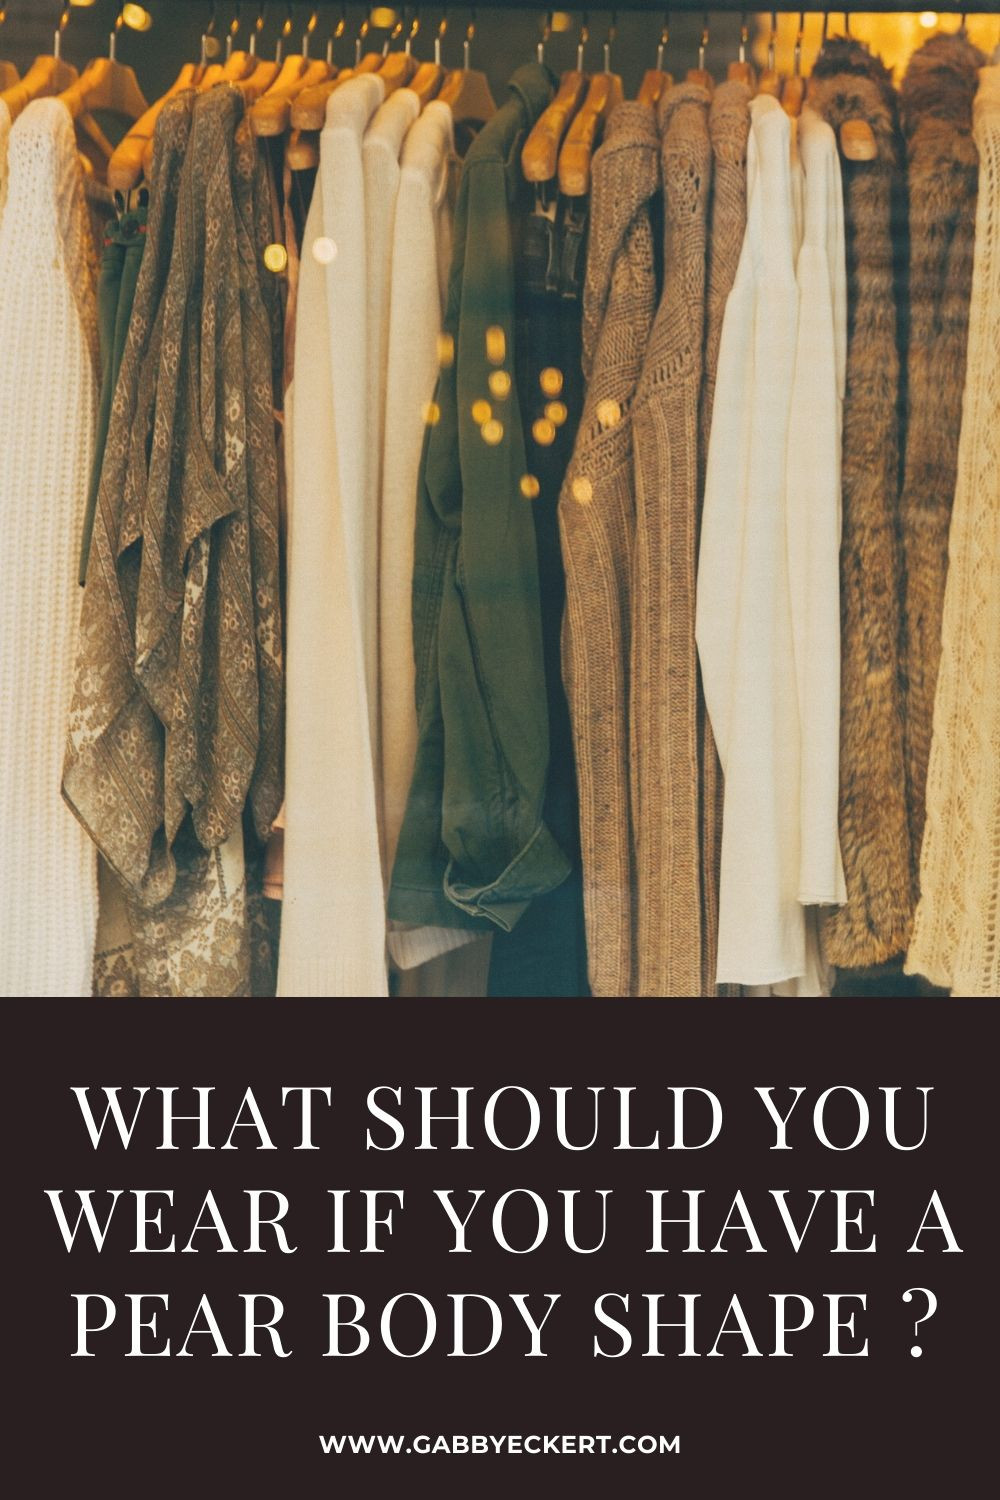 What should you wear if you have a pear body shape